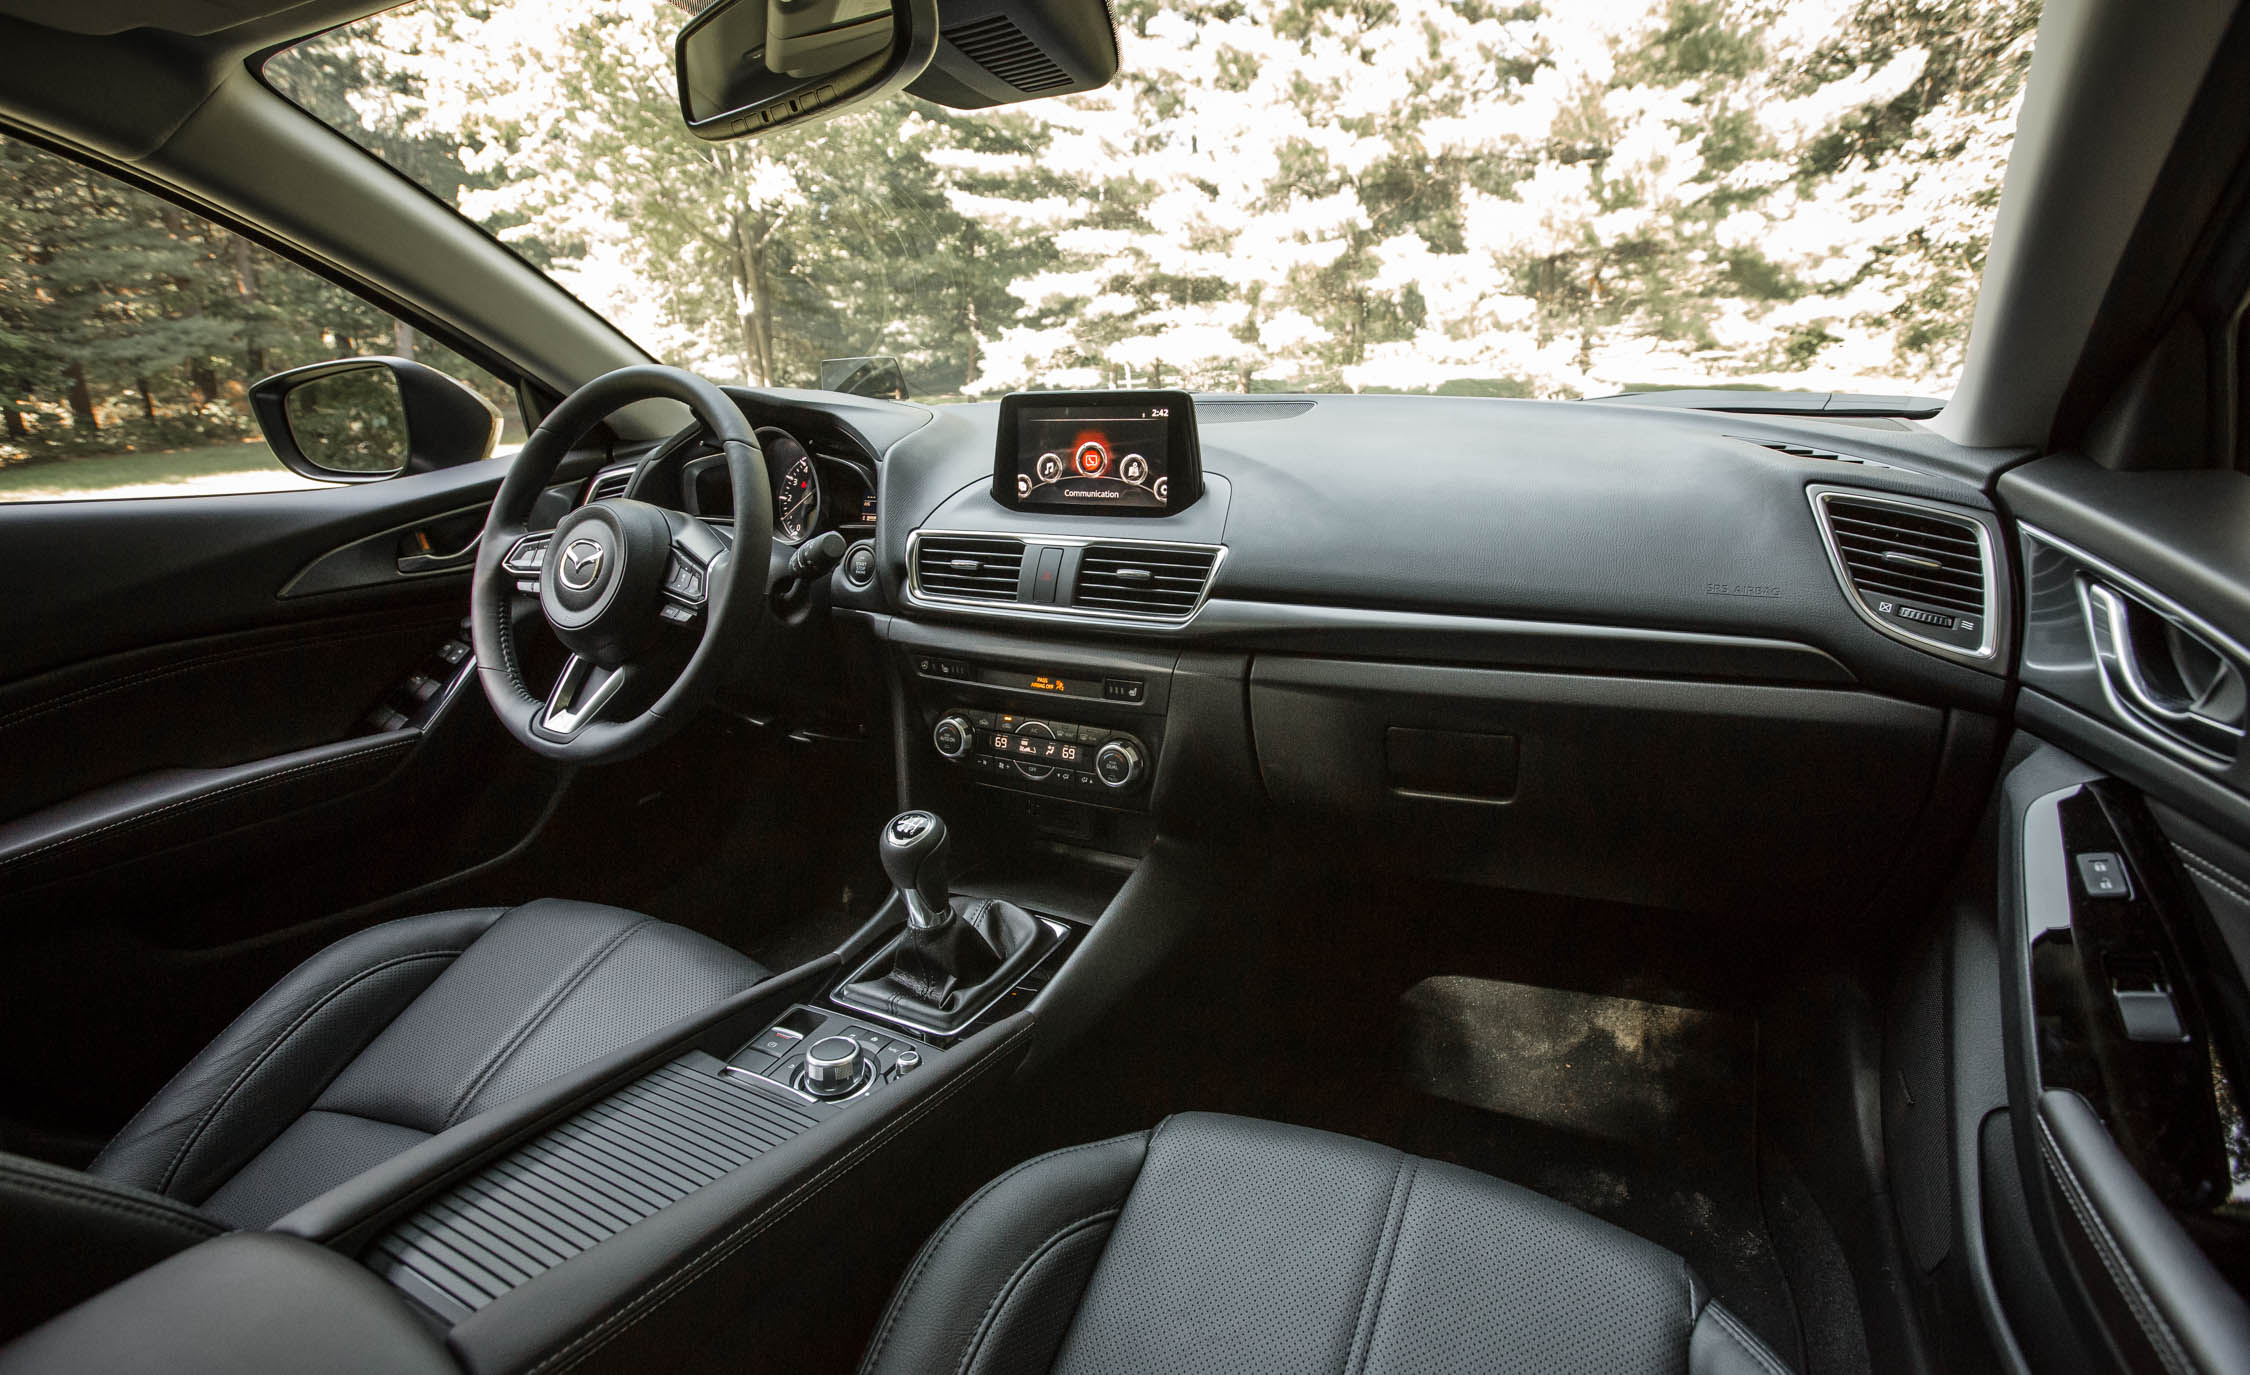 2017 Mazda3 Hatchback Interior Dashboard (Photo 32 of 40)